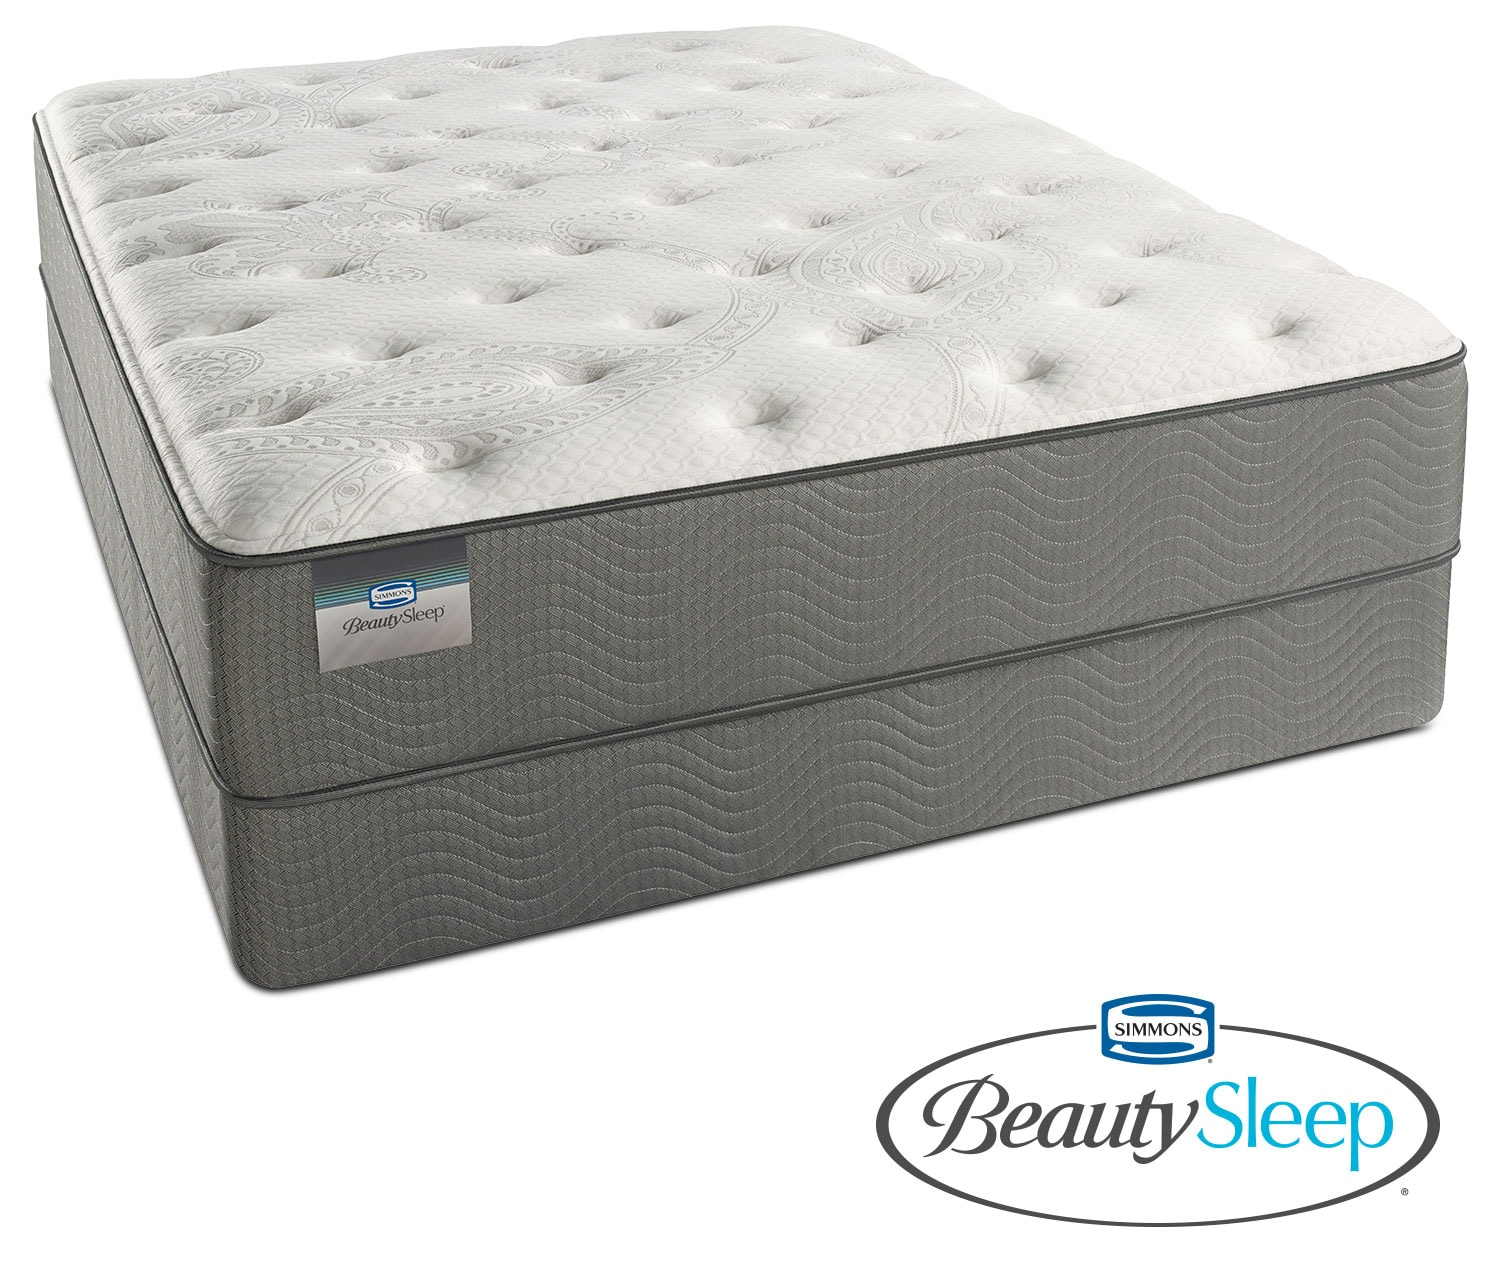 Stags Leap Luxury Firm California King Mattress And Split